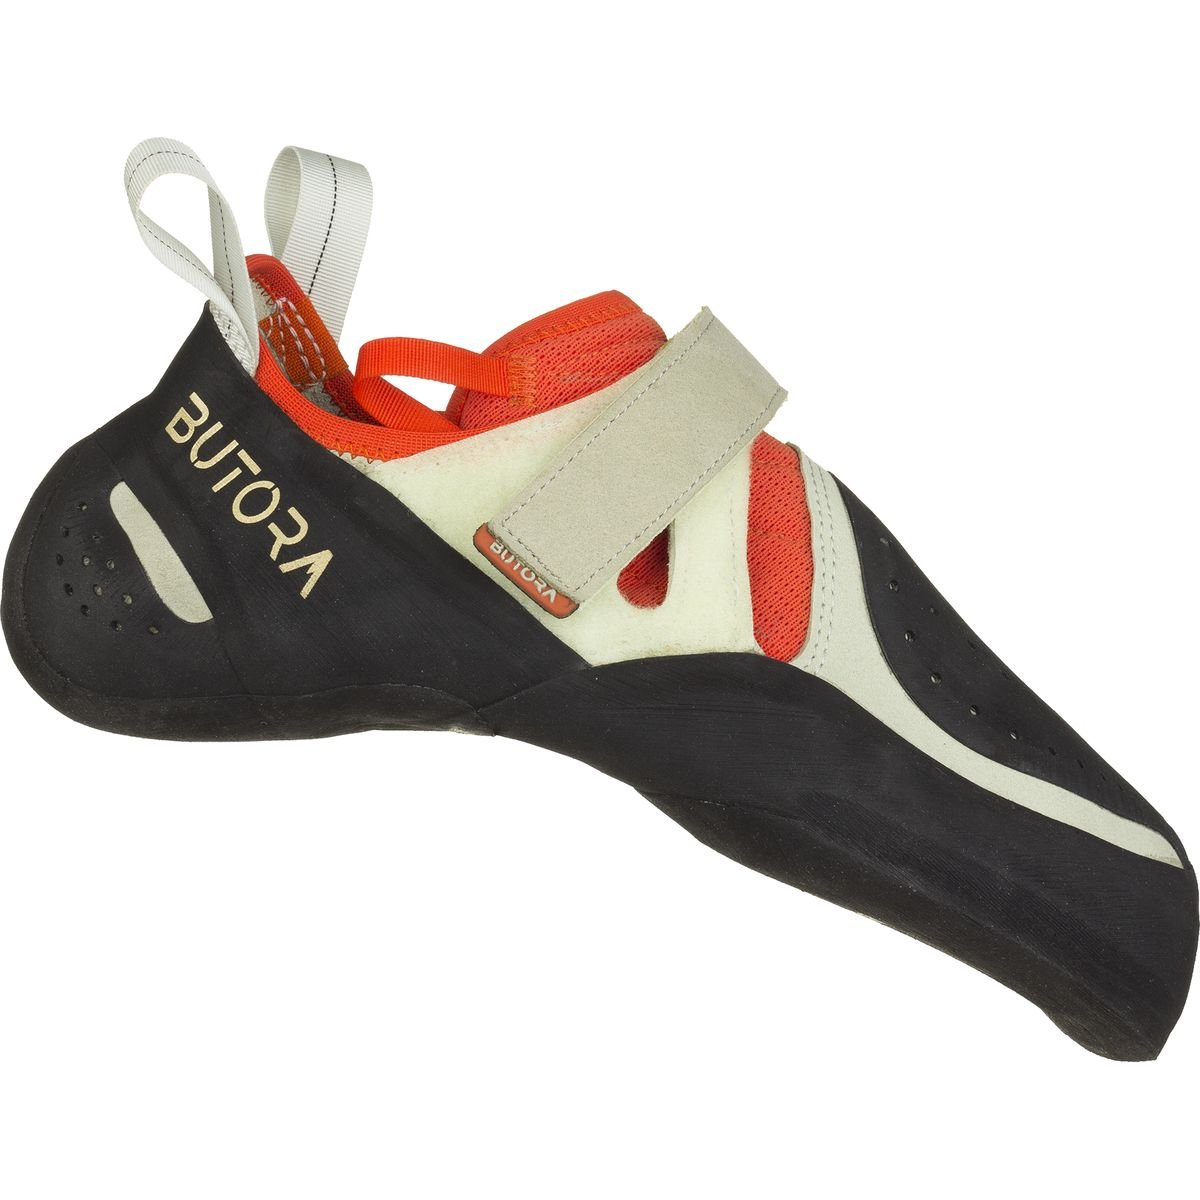 BUTORA Unisex Acro Orange - Wide Fit, Color: Orange/Lime, Size: 9.5 (ACRO-OR-WF-UNI-9.5) by Butora